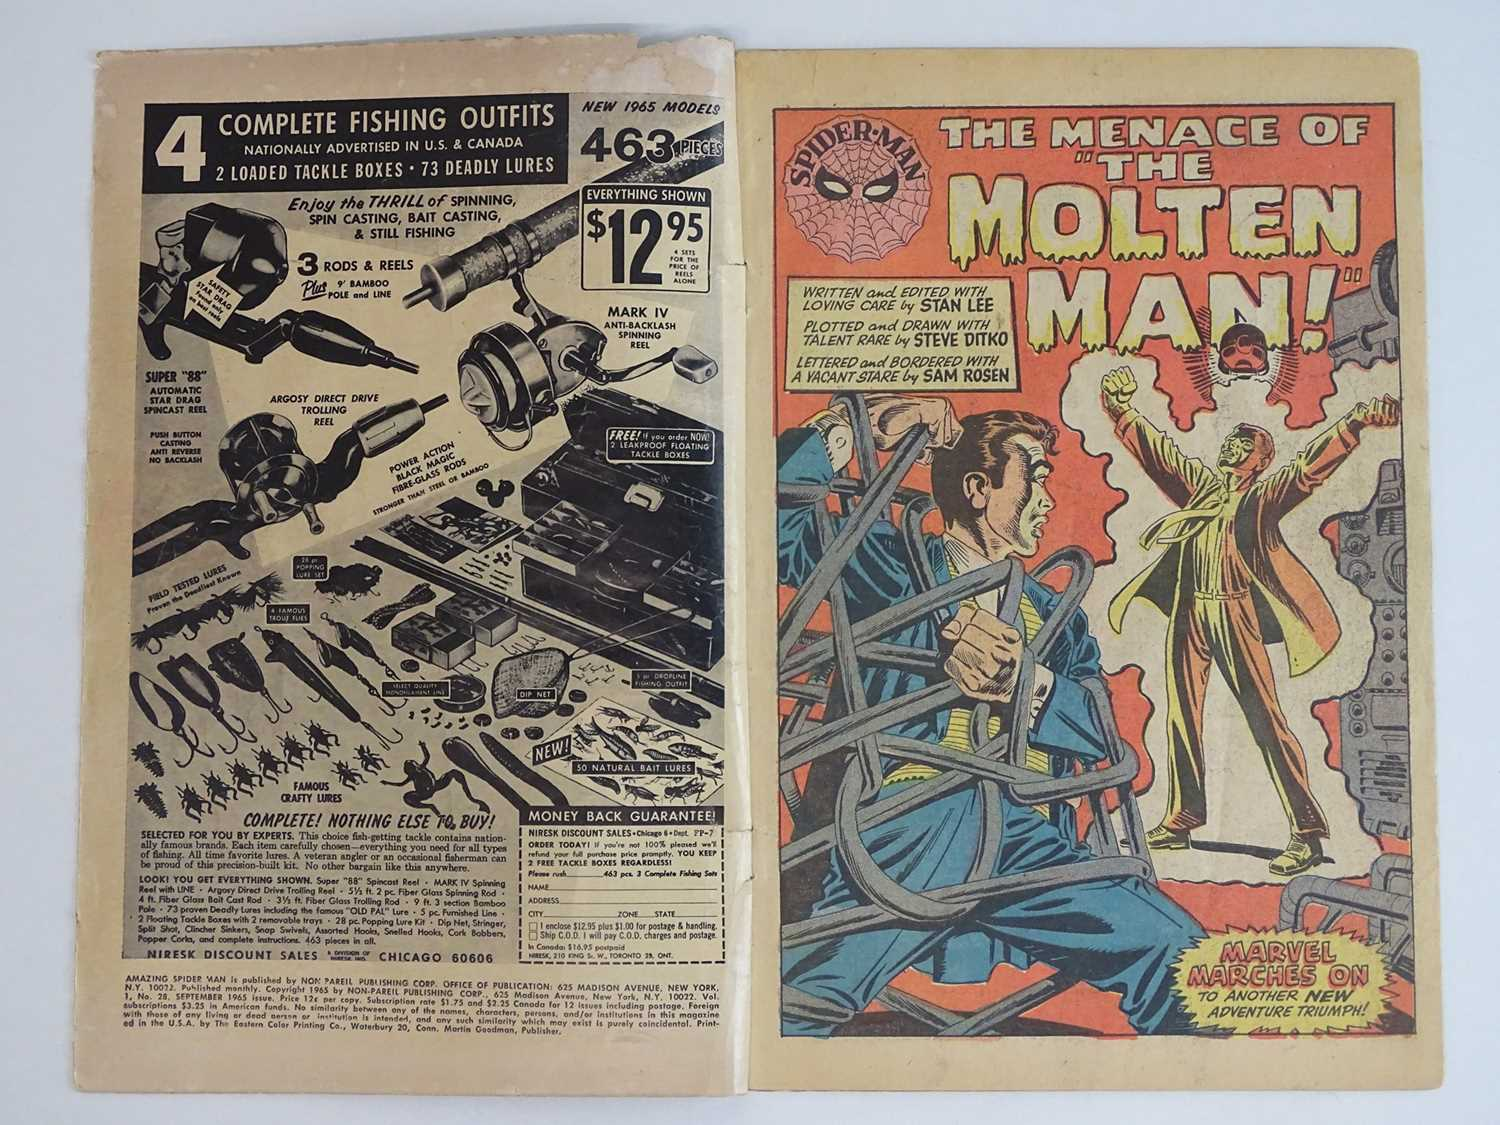 AMAZING SPIDER-MAN #28 - (1965 - MARVEL) - Origin and First appearance of Molten Man + Peter - Image 3 of 9